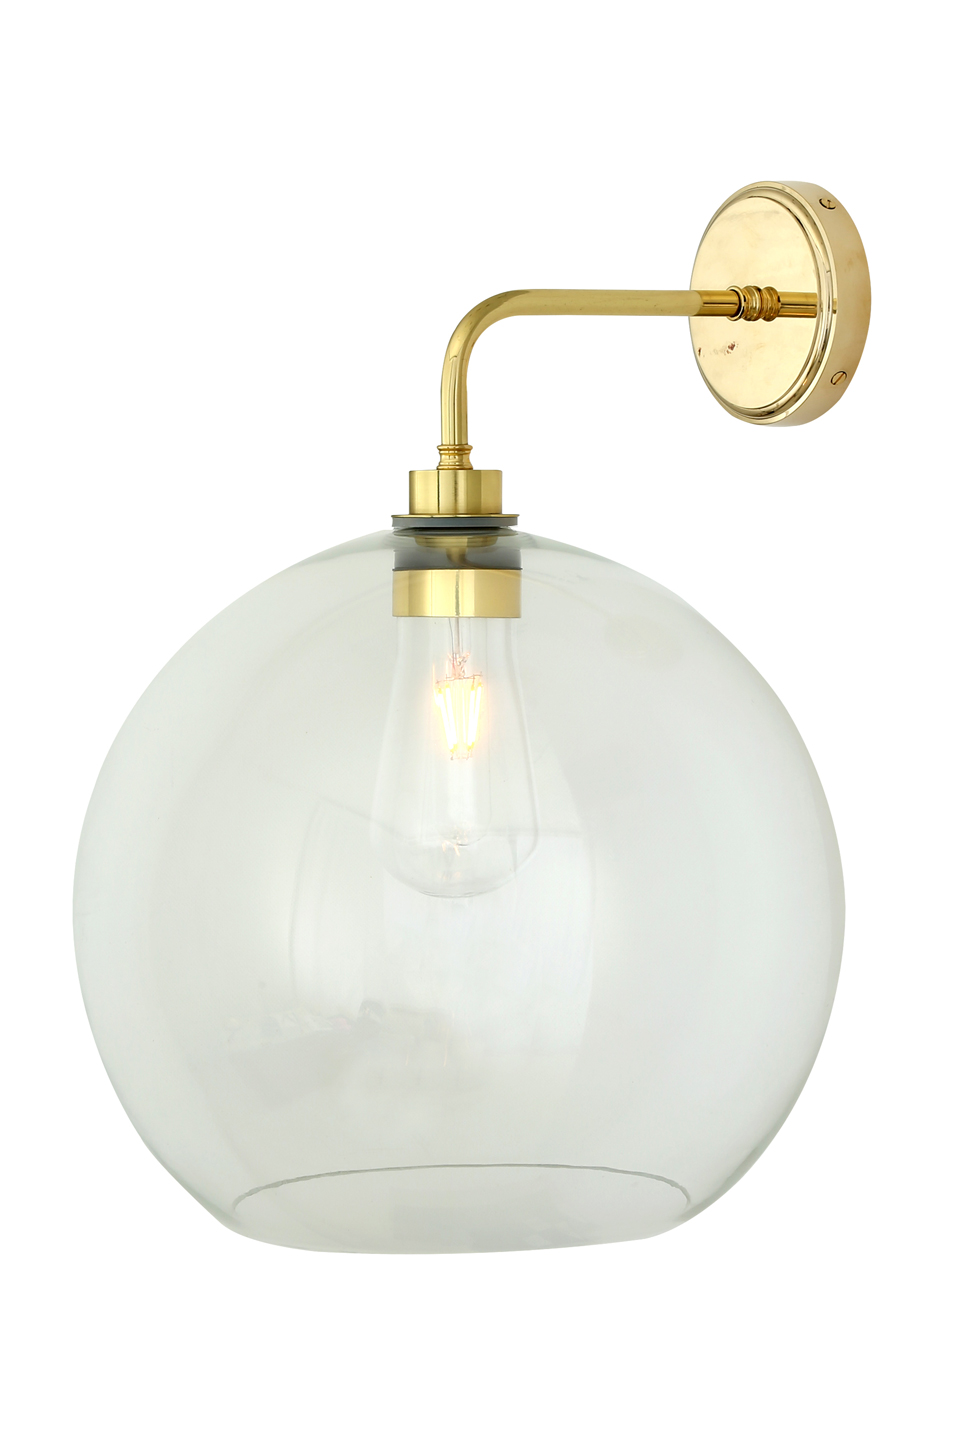 applique en laiton poli, IP54, ampoule LED rétro